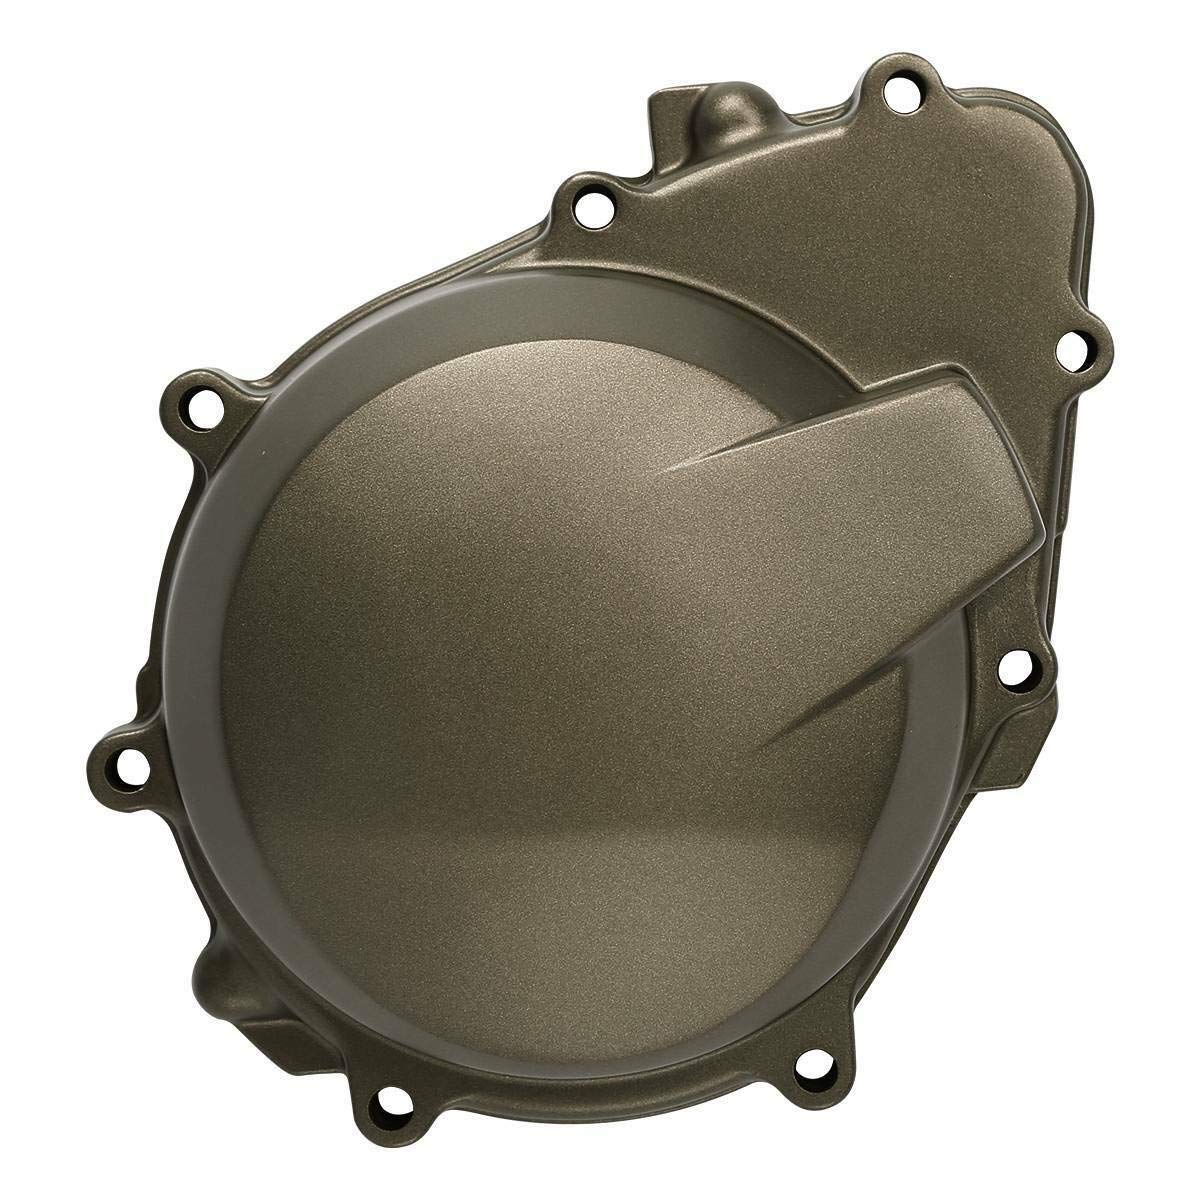 Amazon.com: TCMT Engine Stator Cover Crankcase Fit Fits For ...